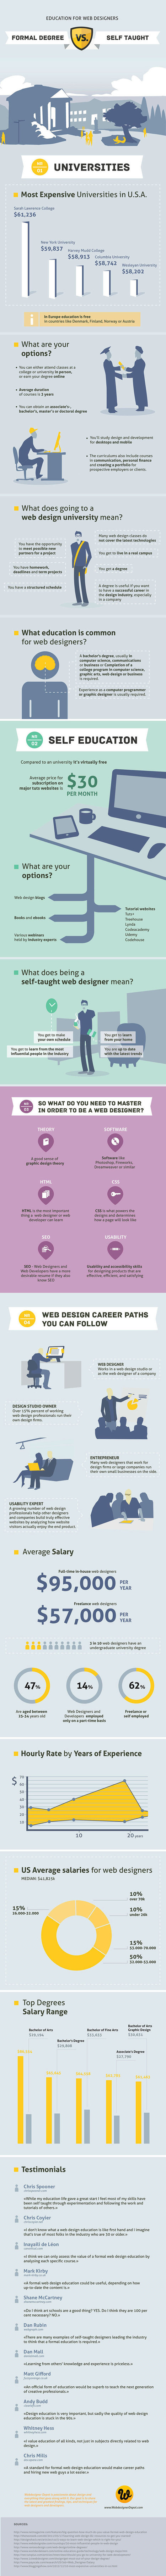 Learning To Code: Get A Degree, Or Just Teach Yourself? [Infographic] | Technologies numériques & Education | Scoop.it